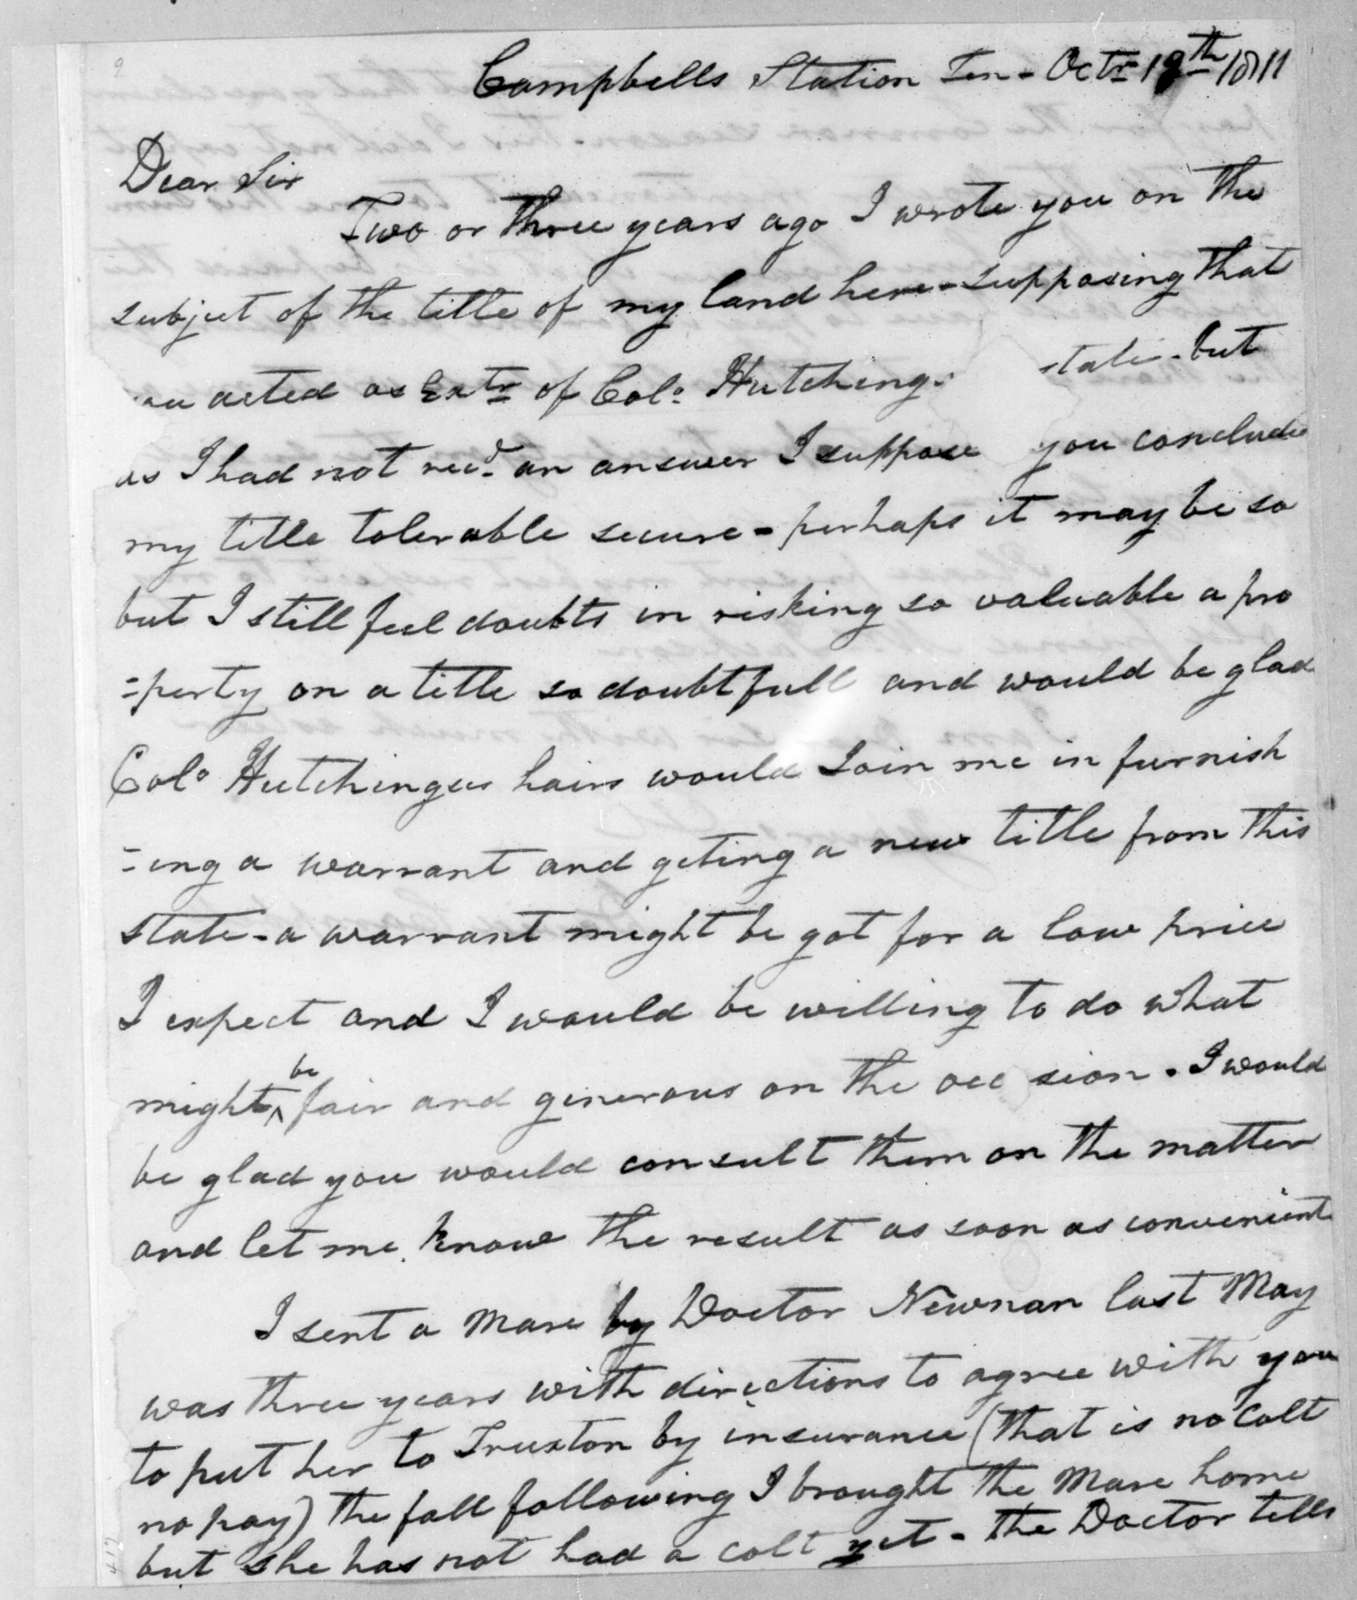 David Campbell to Andrew Jackson, October 19, 1811